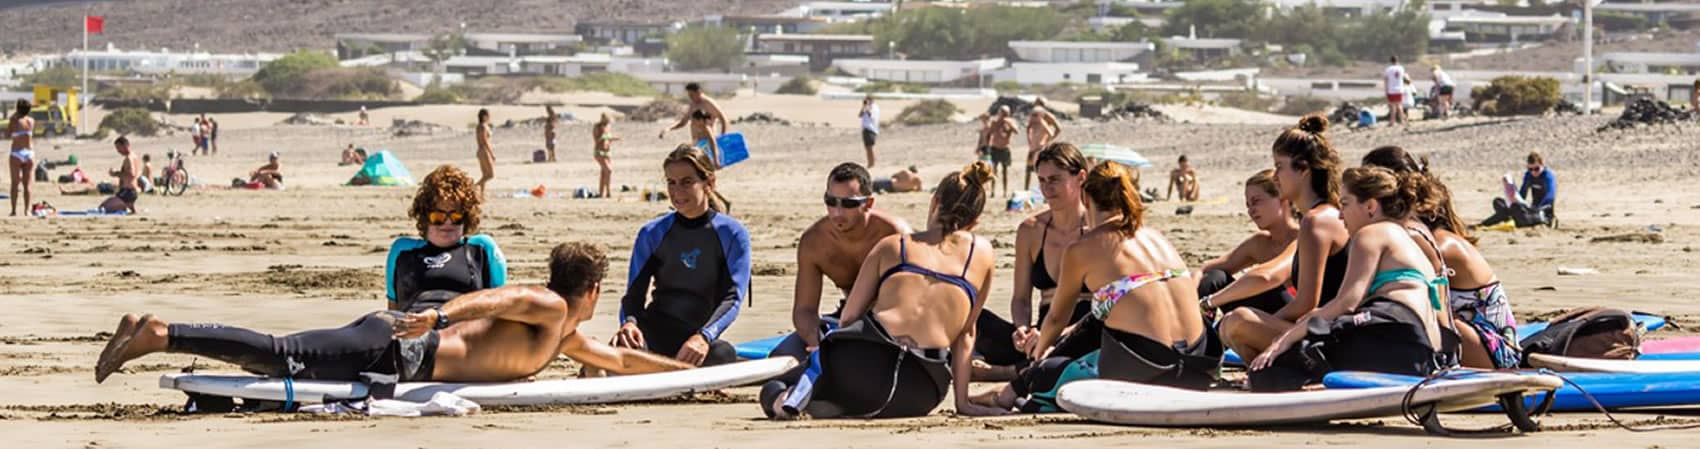 Surf Holidays in Lanzarote